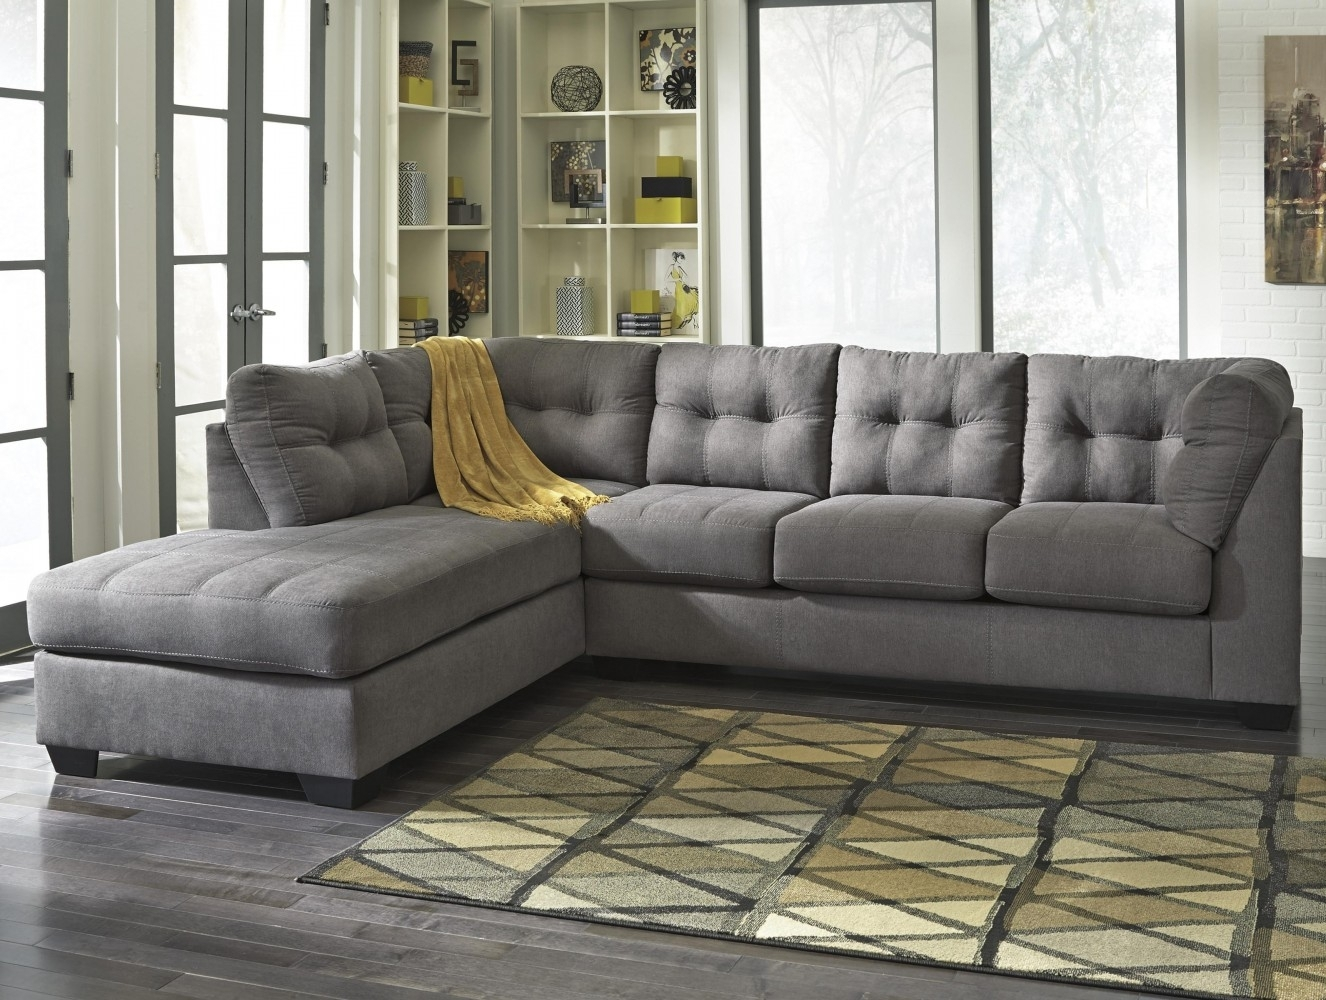 2 Piece Sectional Sofa Canada | Baci Living Room regarding Josephine 2 Piece Sectionals With Laf Sofa (Image 1 of 30)